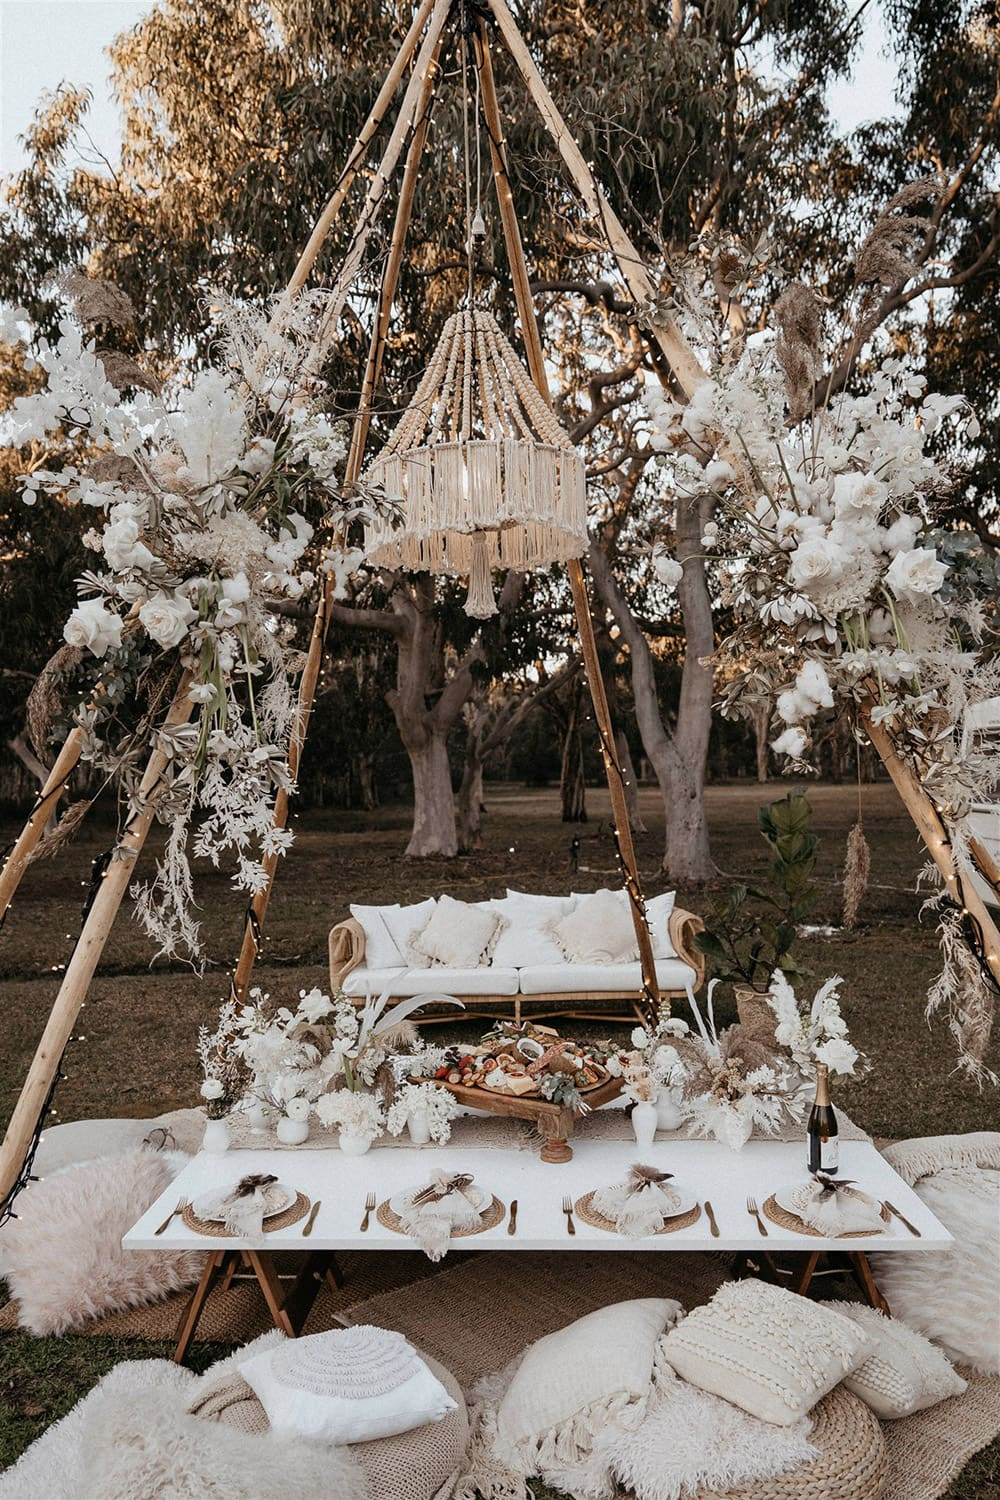 Outdoor Festival Bohemian Wedding Inspiration   A naked tipi wrapped in fairy lights and sprays of boho florals is set for picnic style grazing. Beneath a beaded and fringed chandelier sits layered rugs, scattered cushions in neutral and white textures and a low table set for eight. This is topped with a macrame runner and clusters of white vessels displaying fresh posies. The place settings feature gold cutlery, a natural woven placemat topped with white plateware and neutral napkins tied with cord and feathers. A generous antipasto platter placed in the centre of the table is ready for the happy couple and their crew!   Photography: Shae Estella Photo